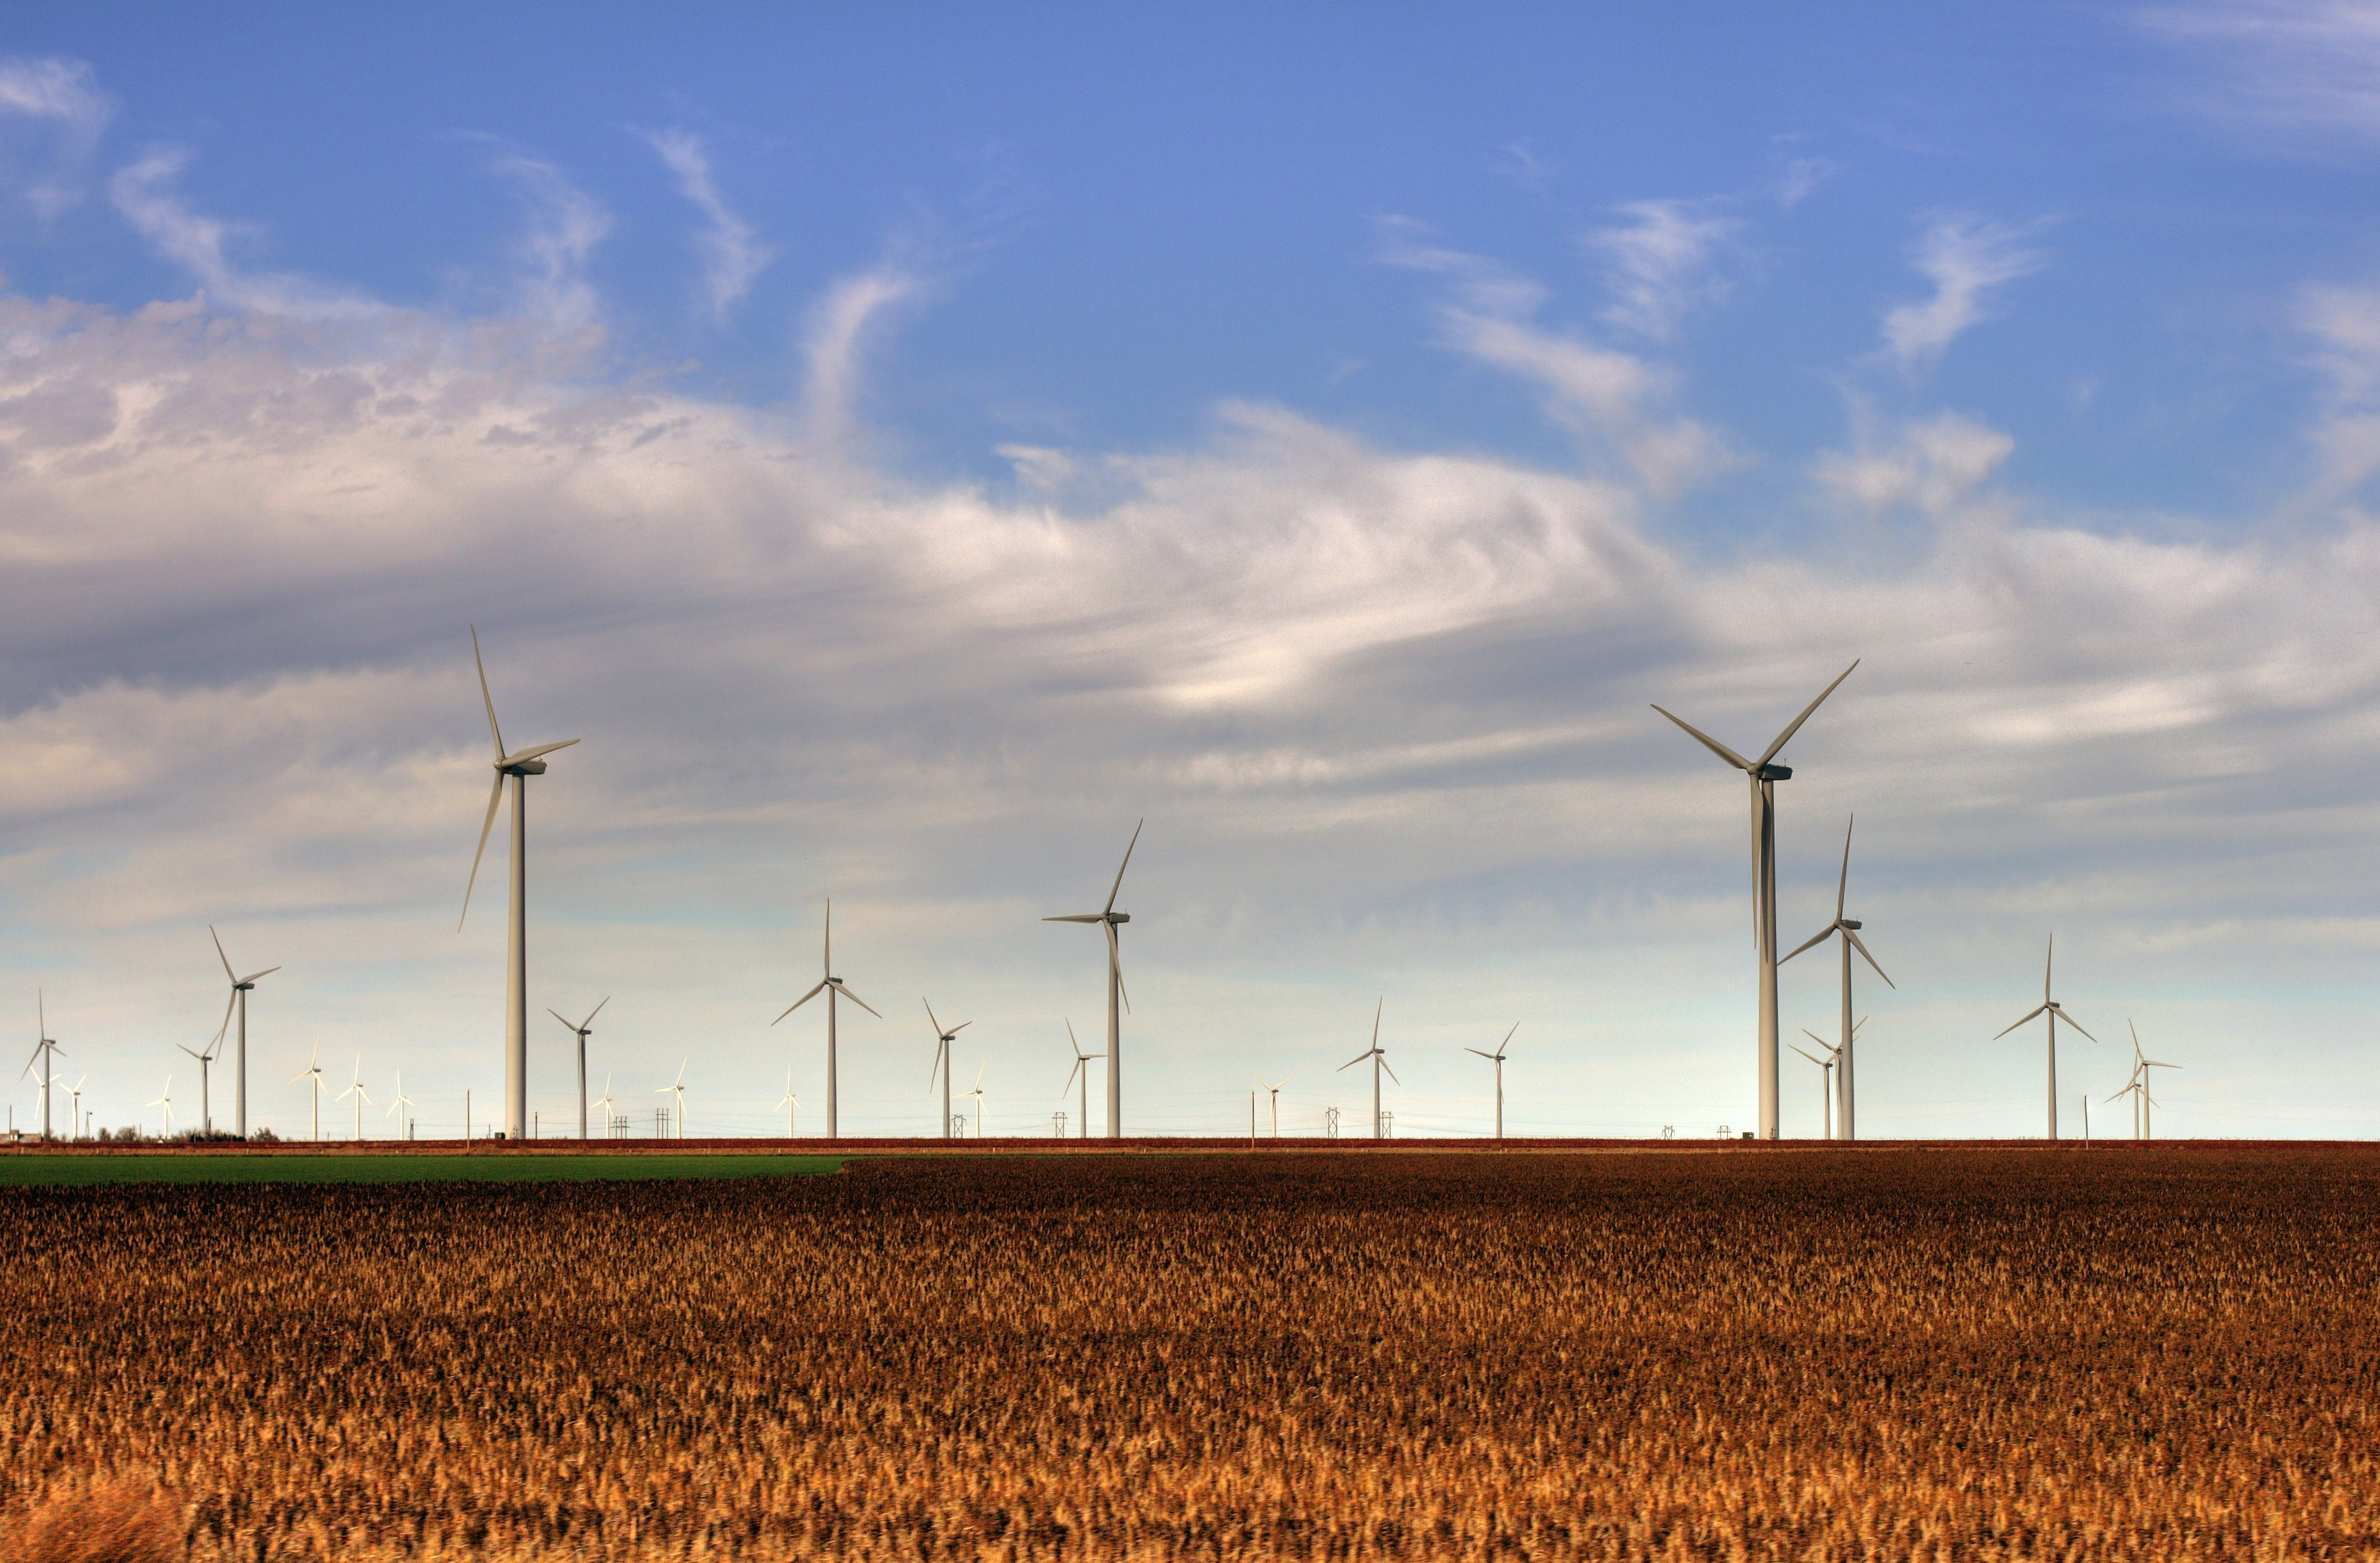 File:Smoky Hills Wind Farm.jpg - Wikipedia, the free encyclopedia